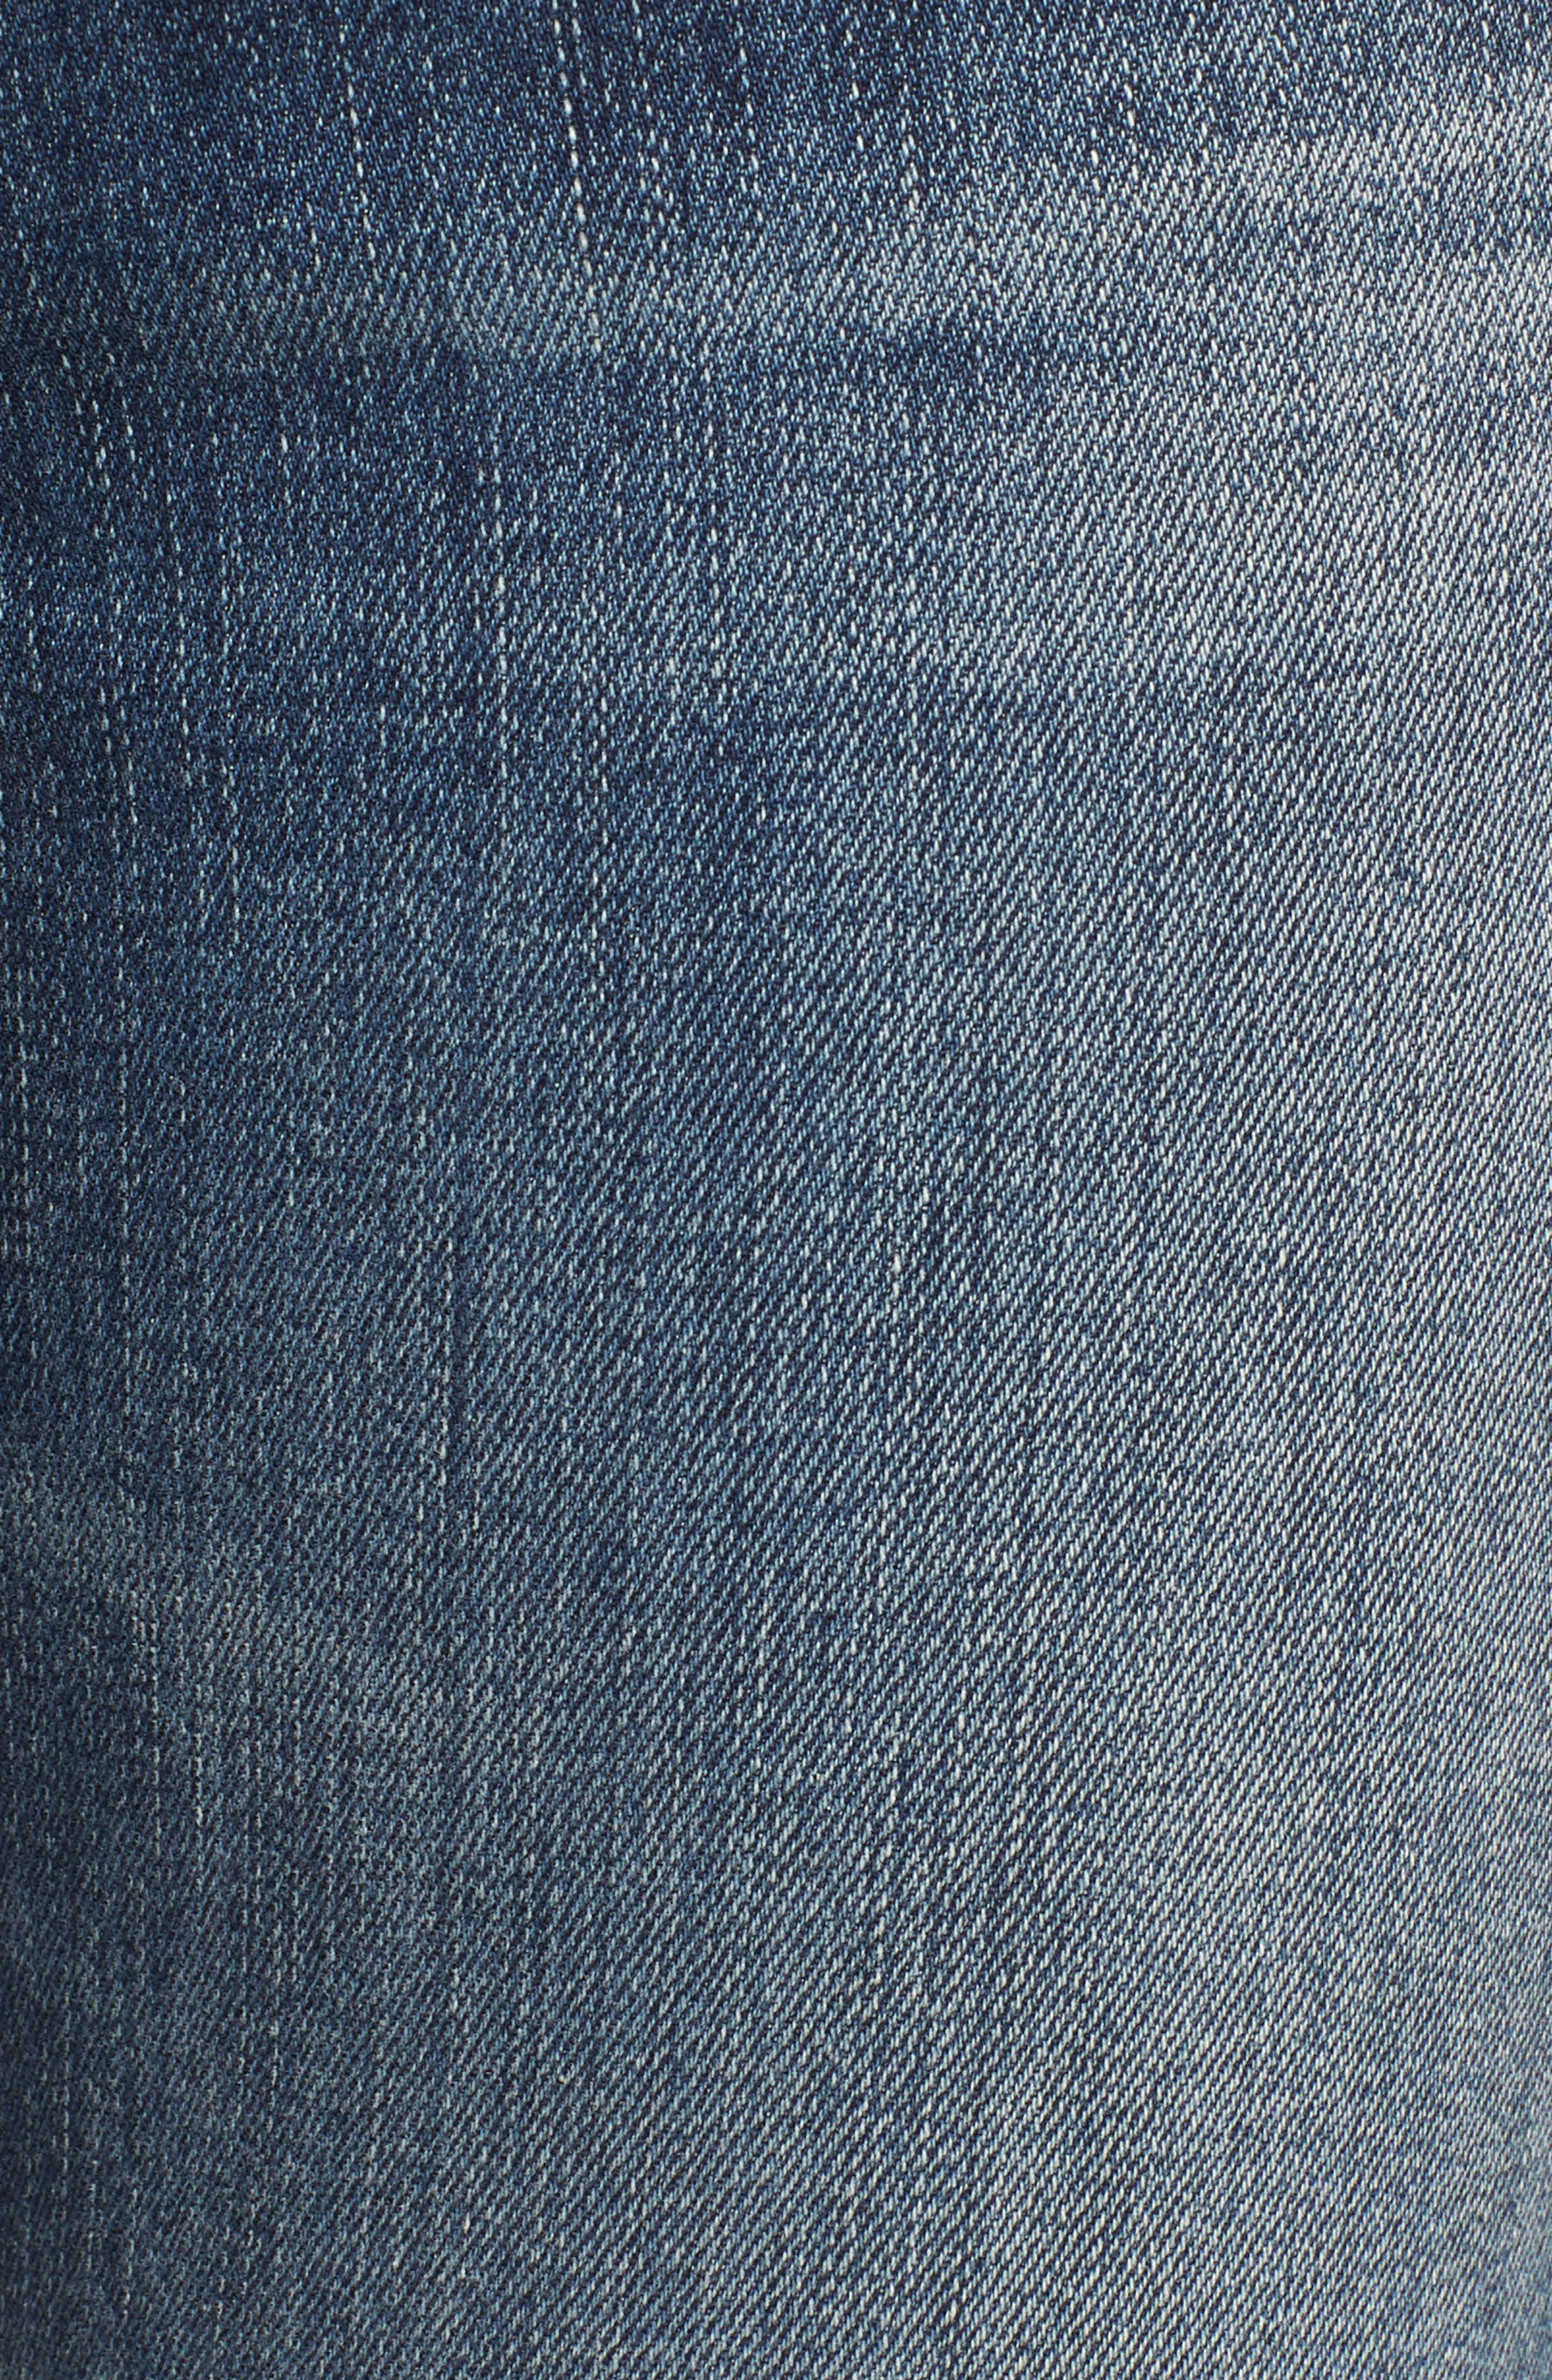 7 FOR ALL MANKIND<SUP>®</SUP>, The High Waist Ankle Skinny Jeans, Alternate thumbnail 6, color, 400